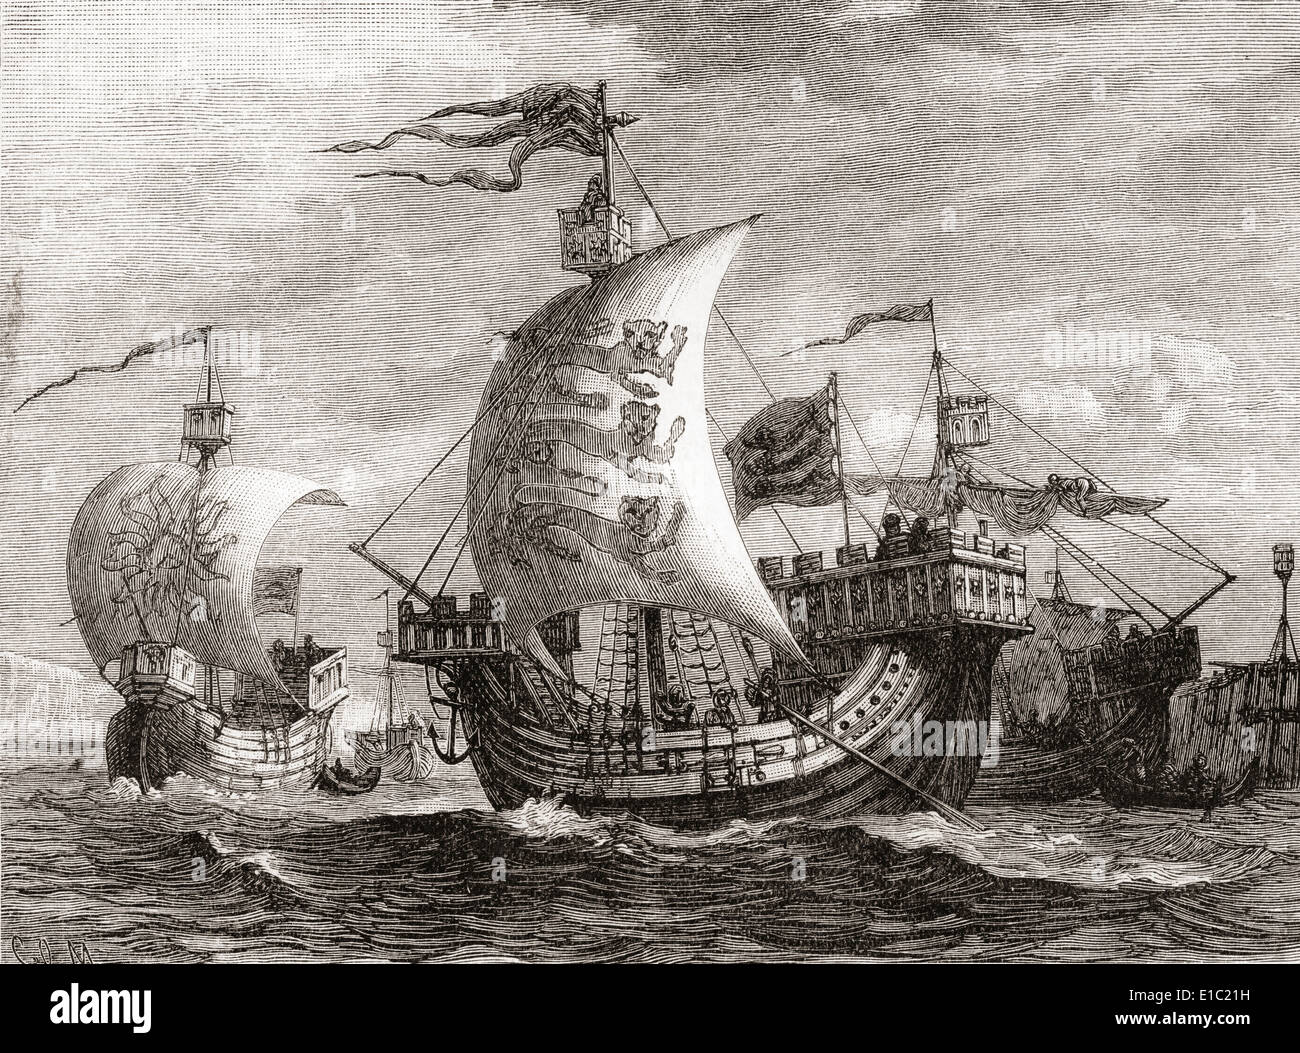 English ships in the 14th century. - Stock Image